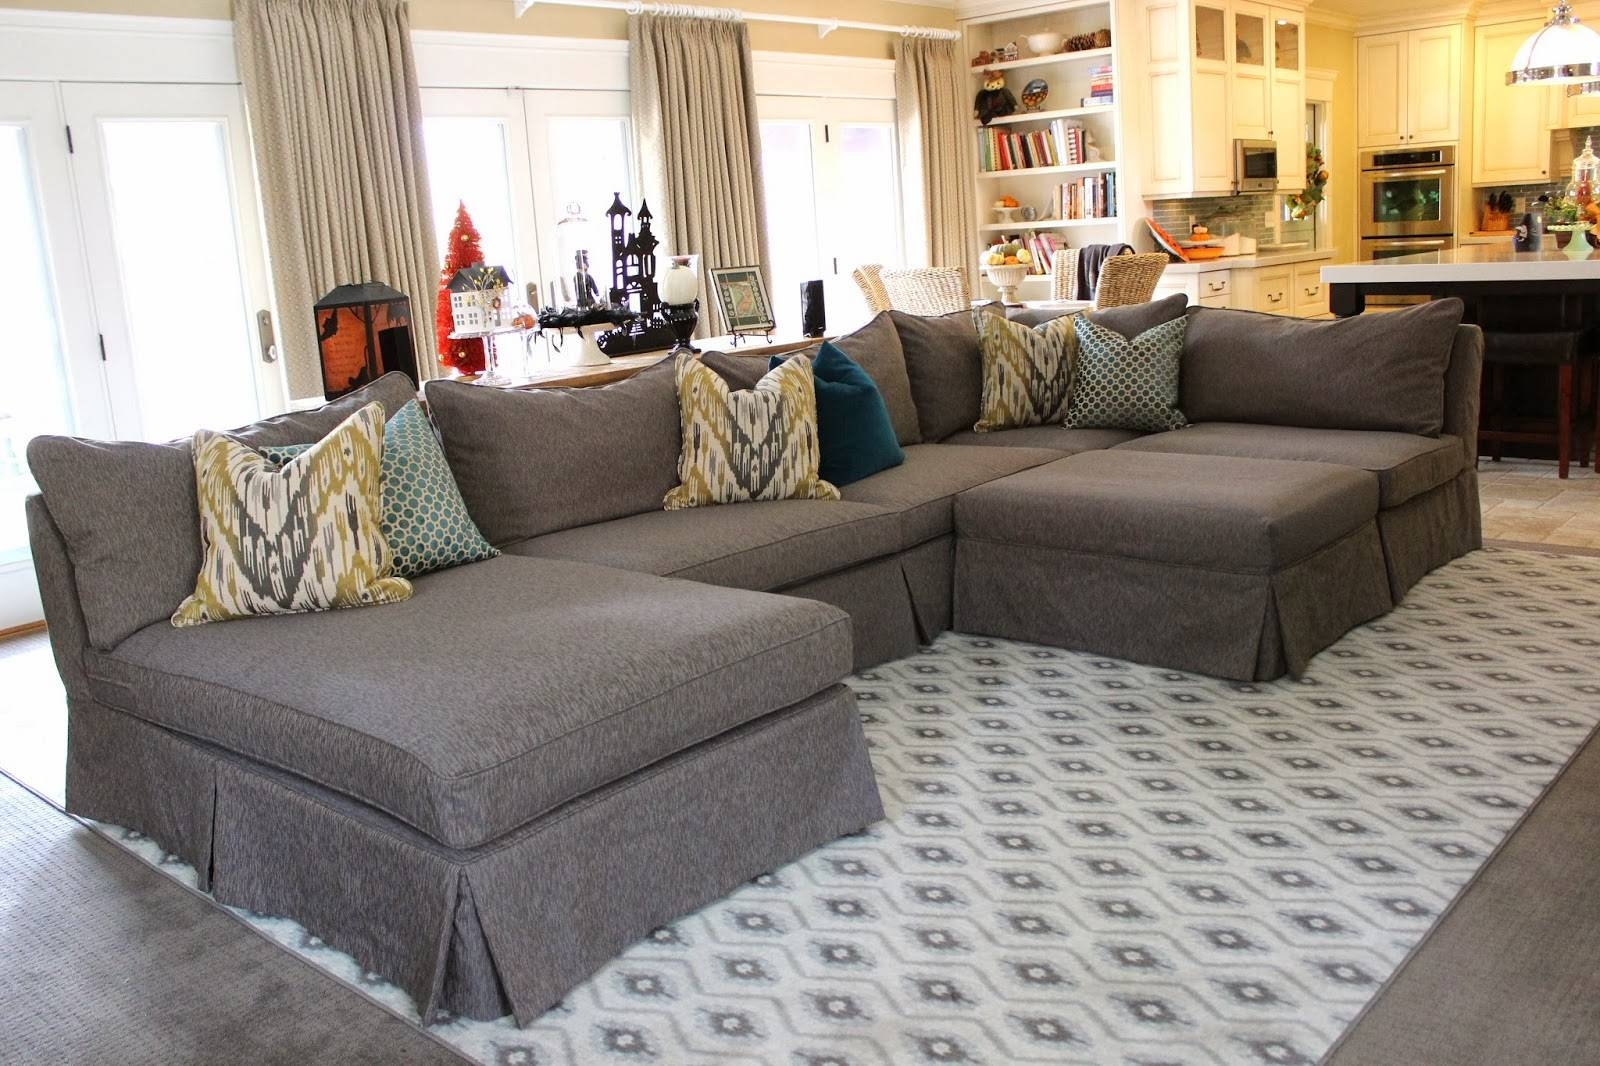 Brilliant Grey Sectional Couches N Intended Design Ideas regarding Sectional Sofa Ideas (Image 10 of 30)